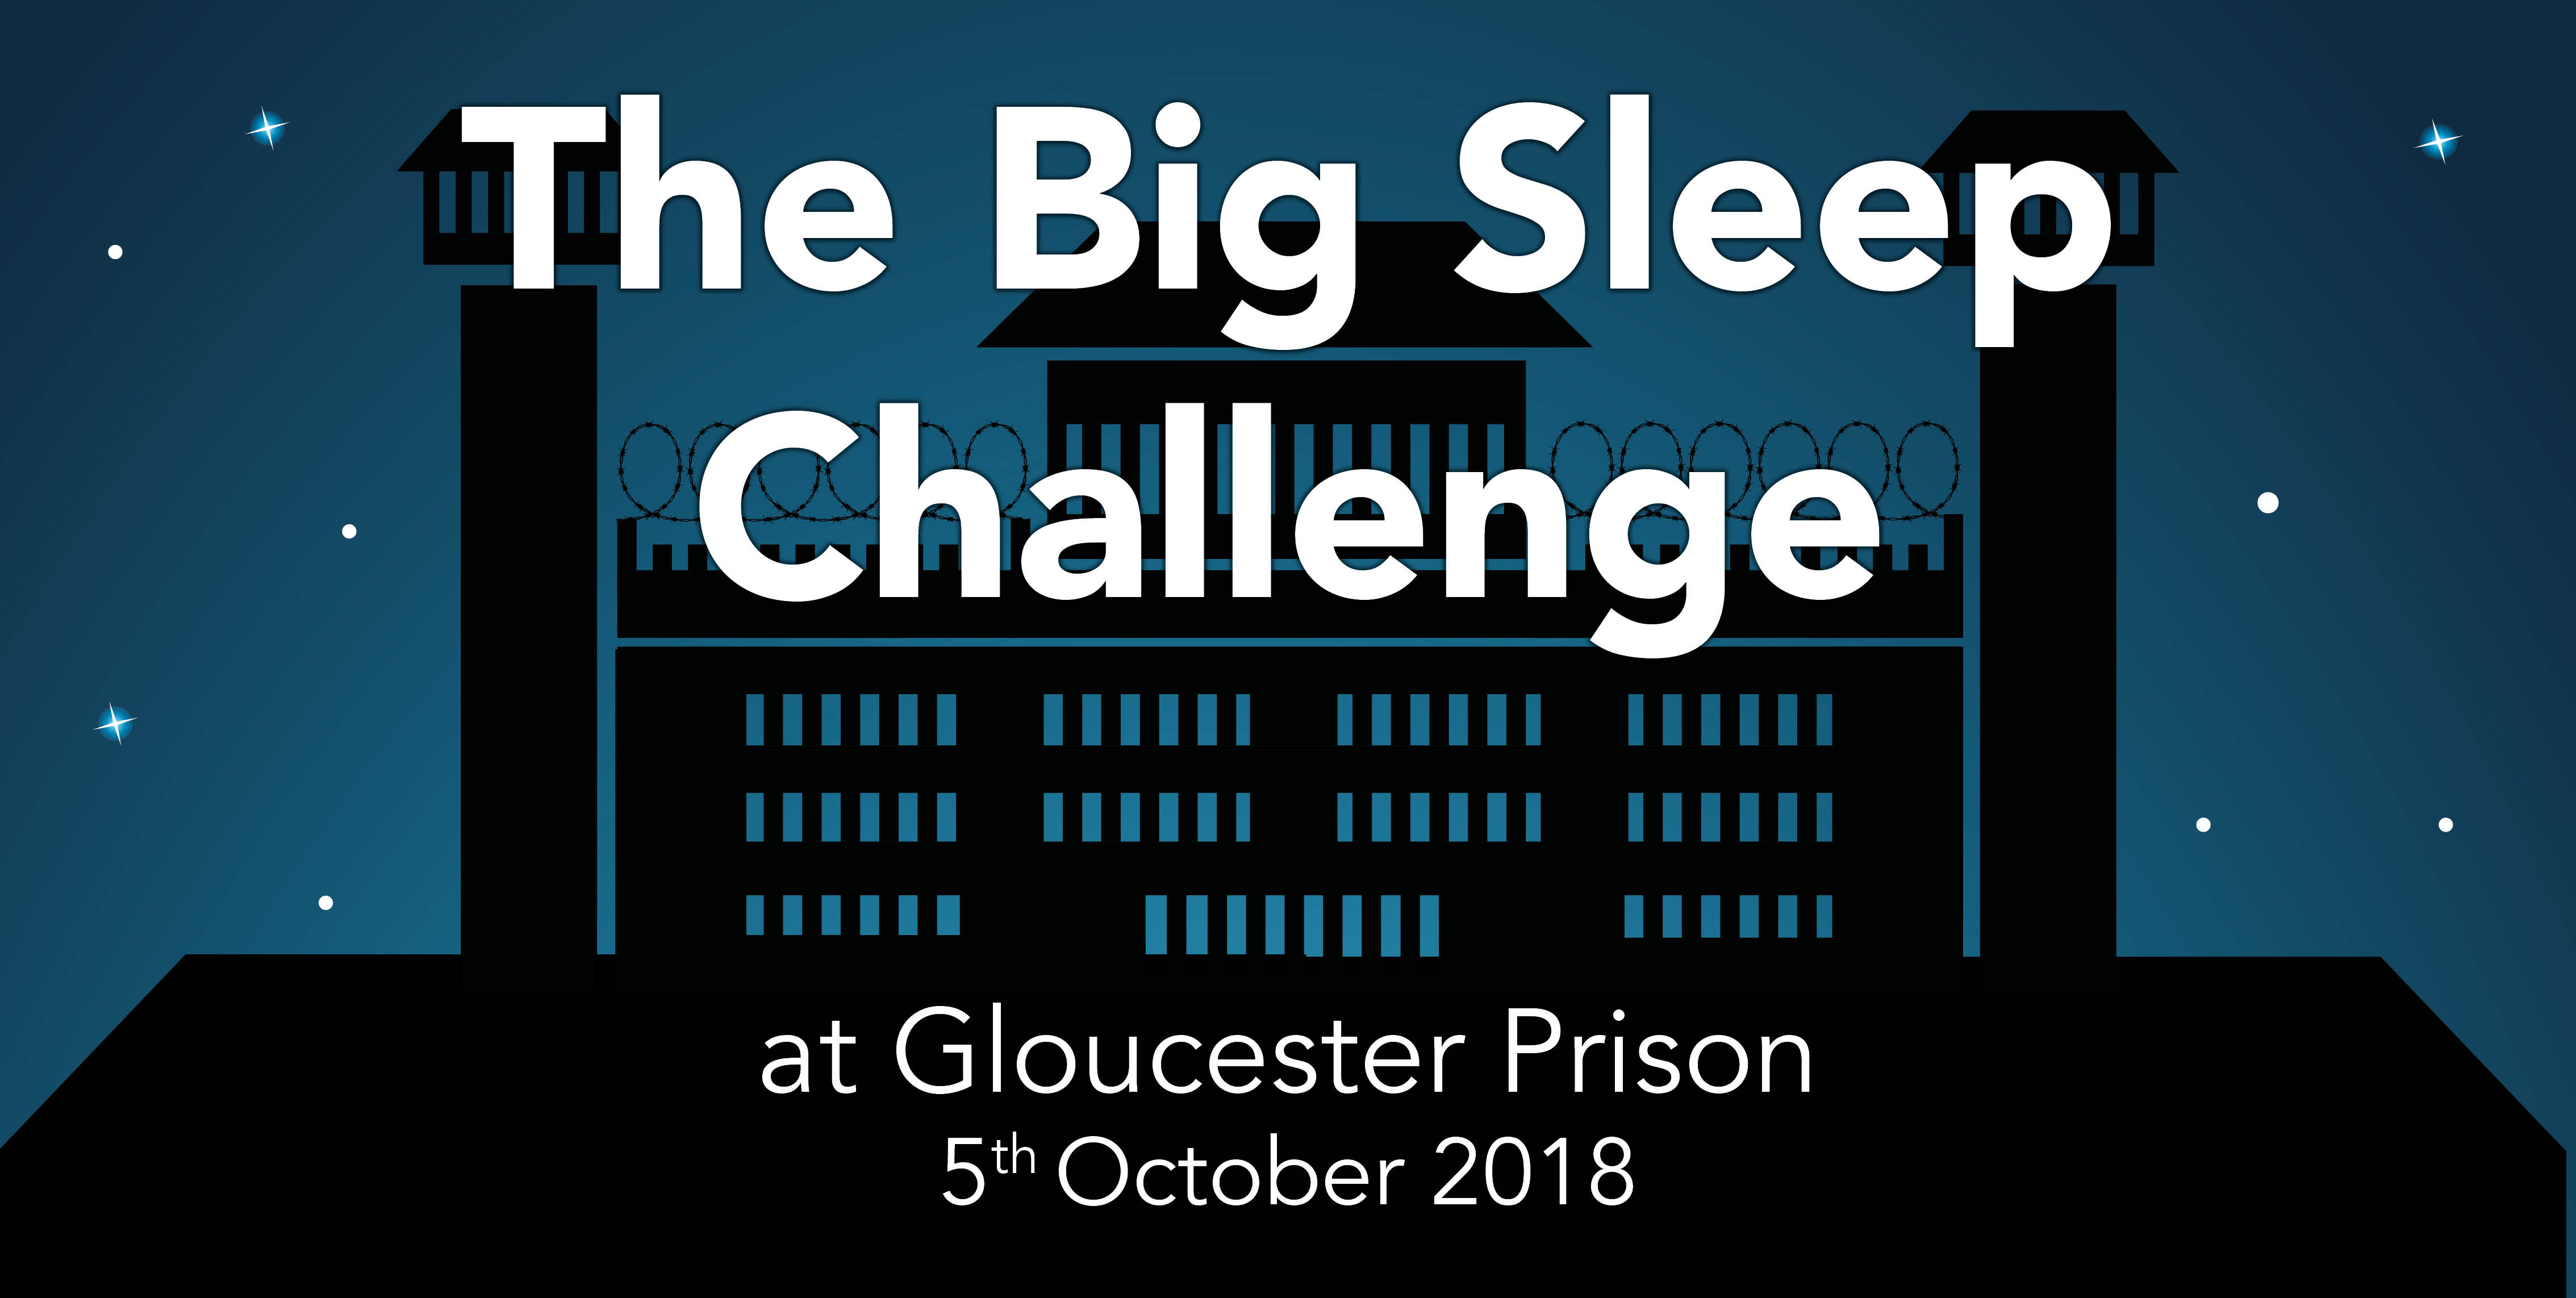 the big sleep challenge at gloucester prison alabare homes for veterans